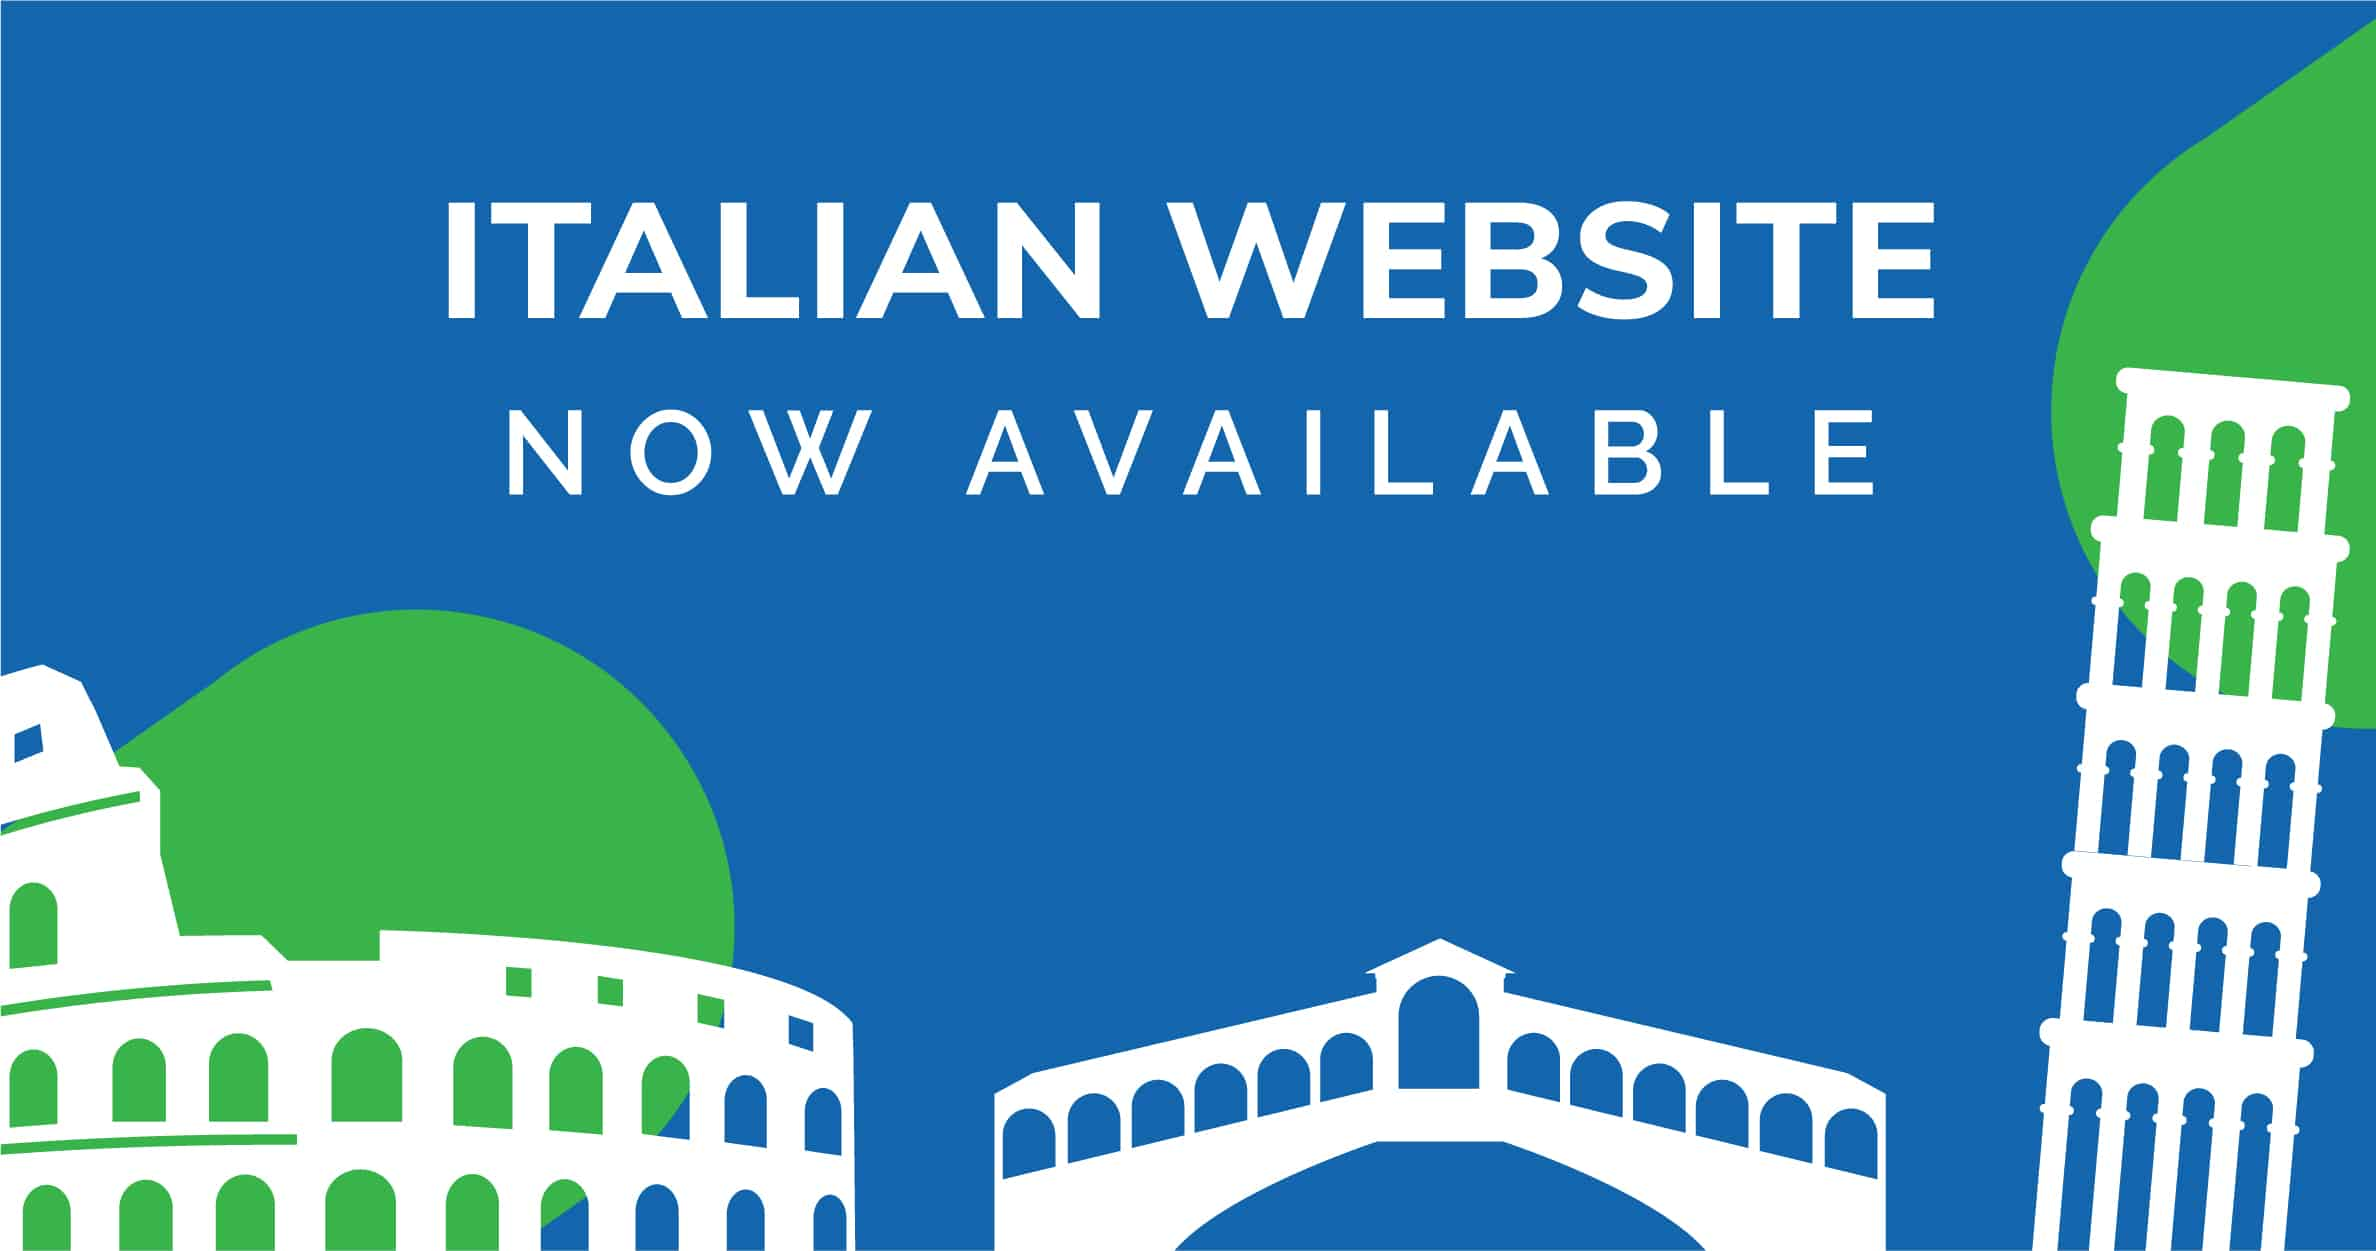 Memcon website is now available in Italian language